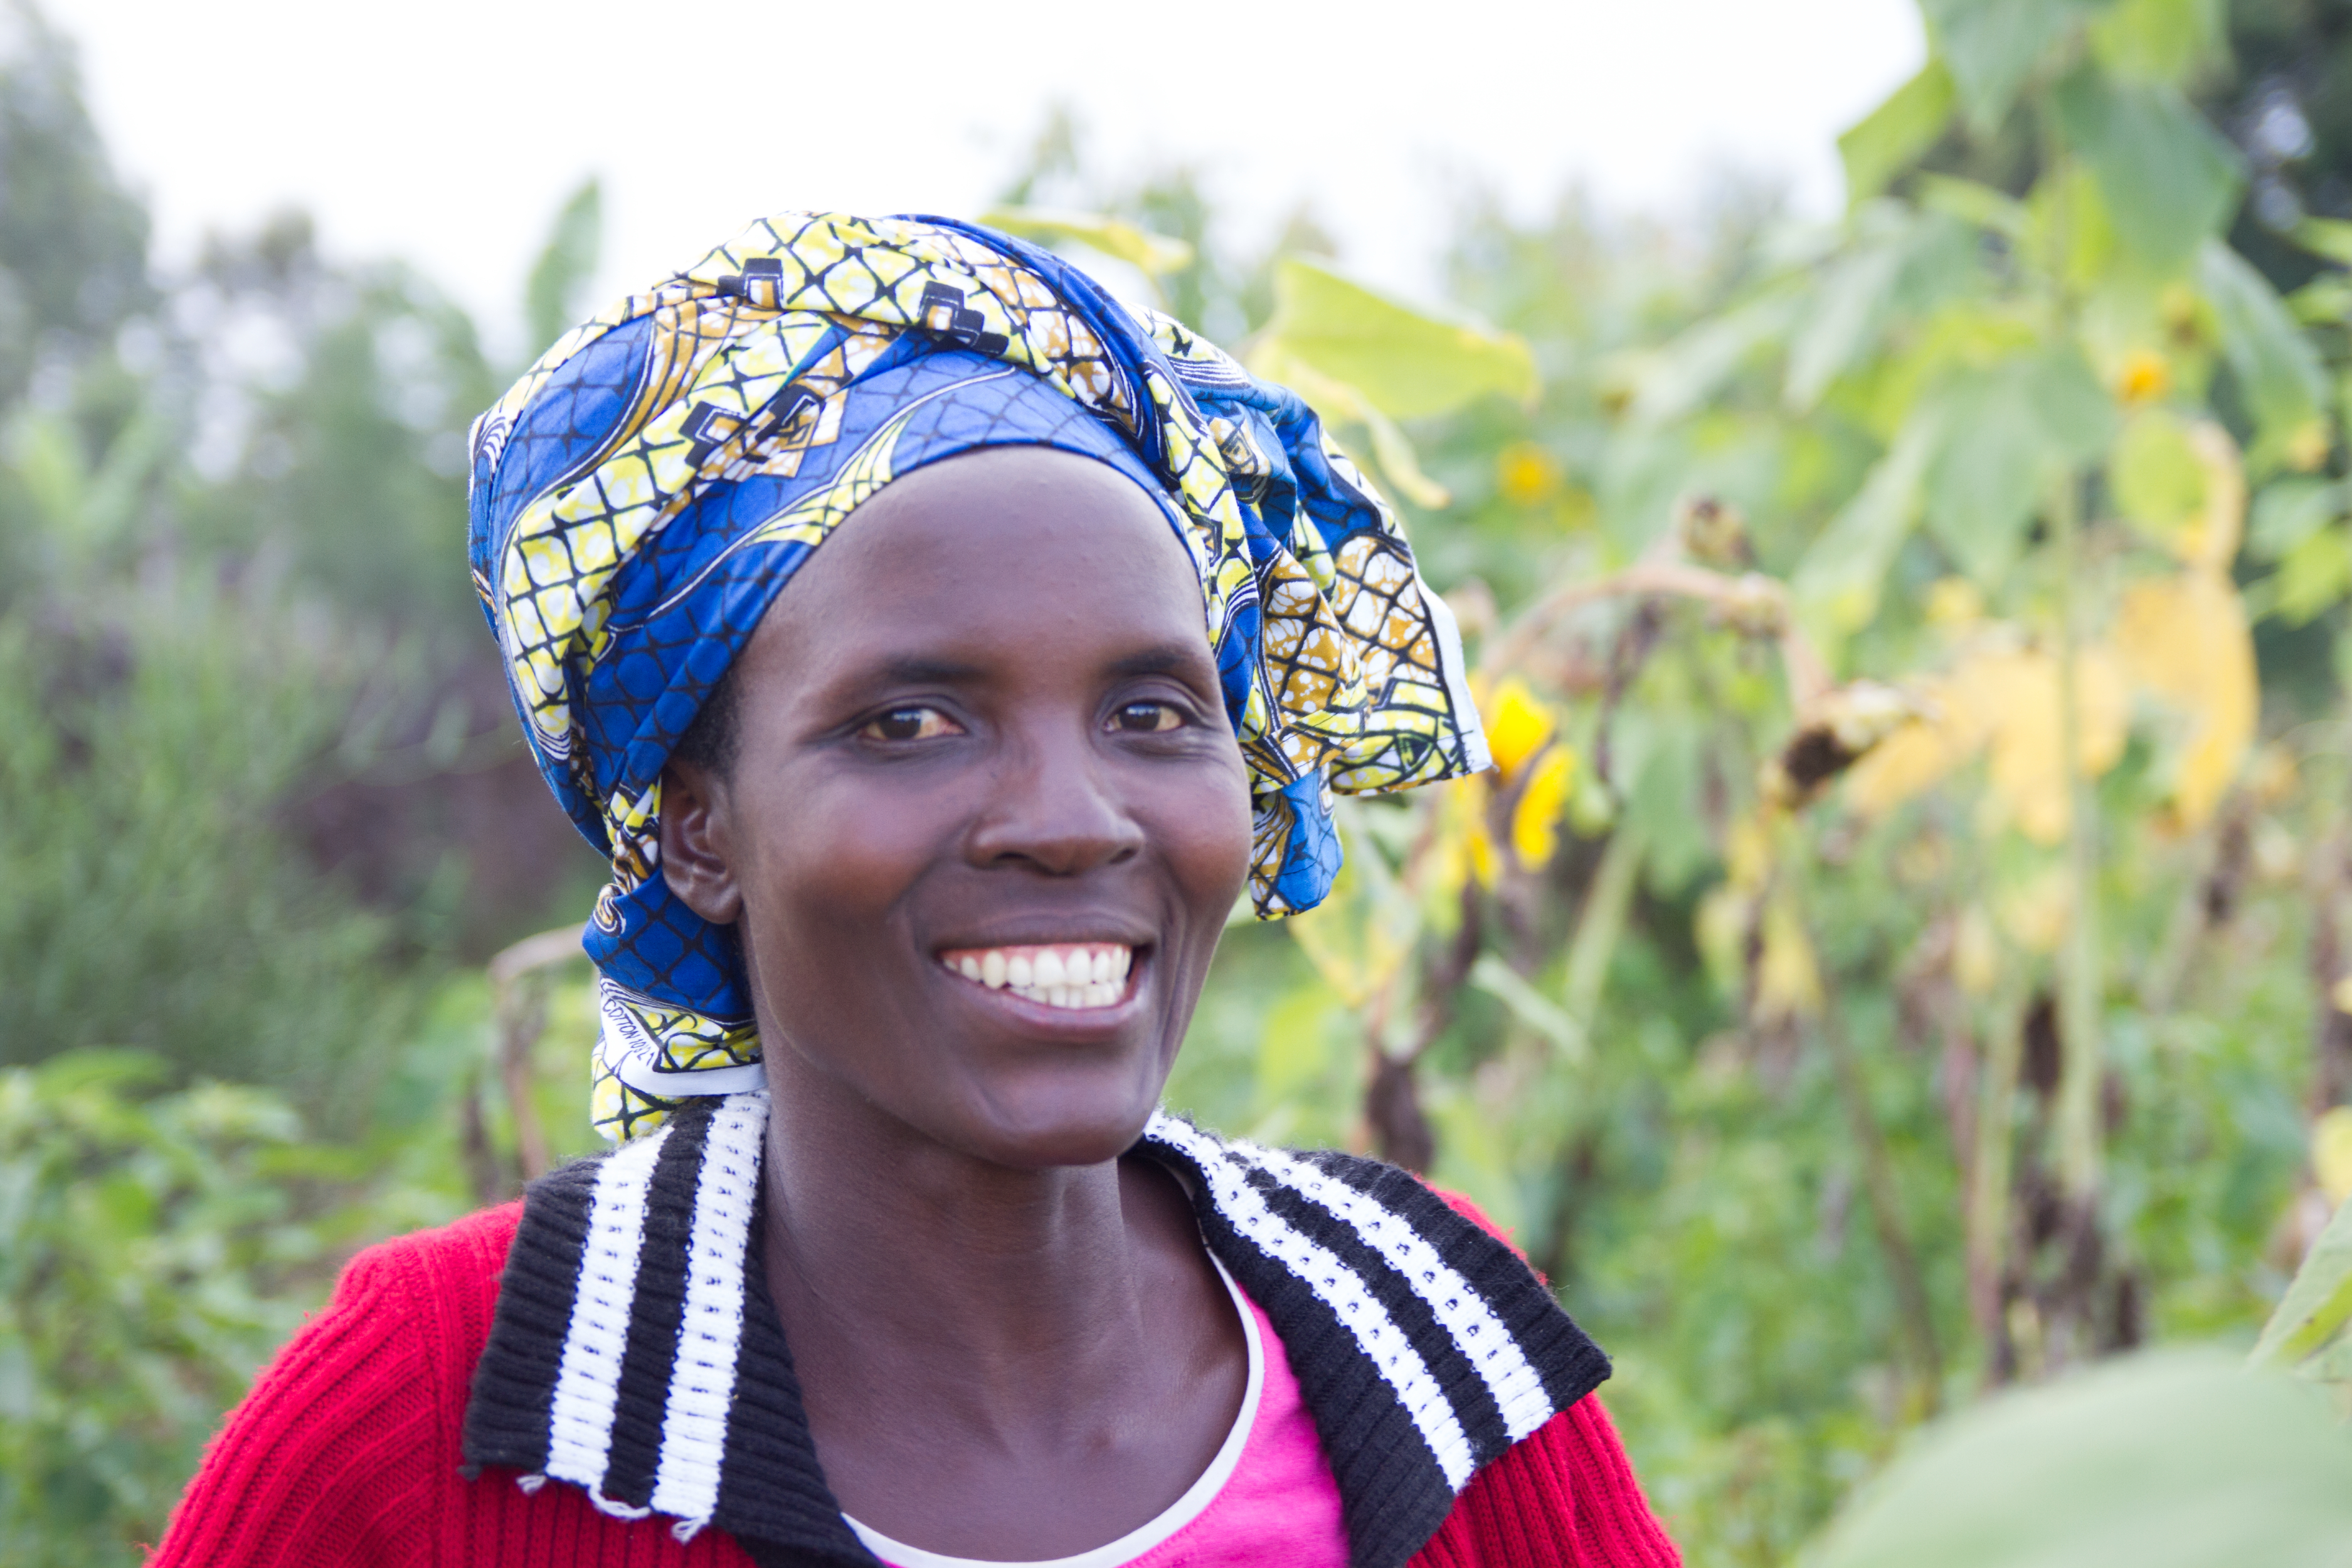 Jacqueline, a sunflower seed and vegetable farmer from Burundi